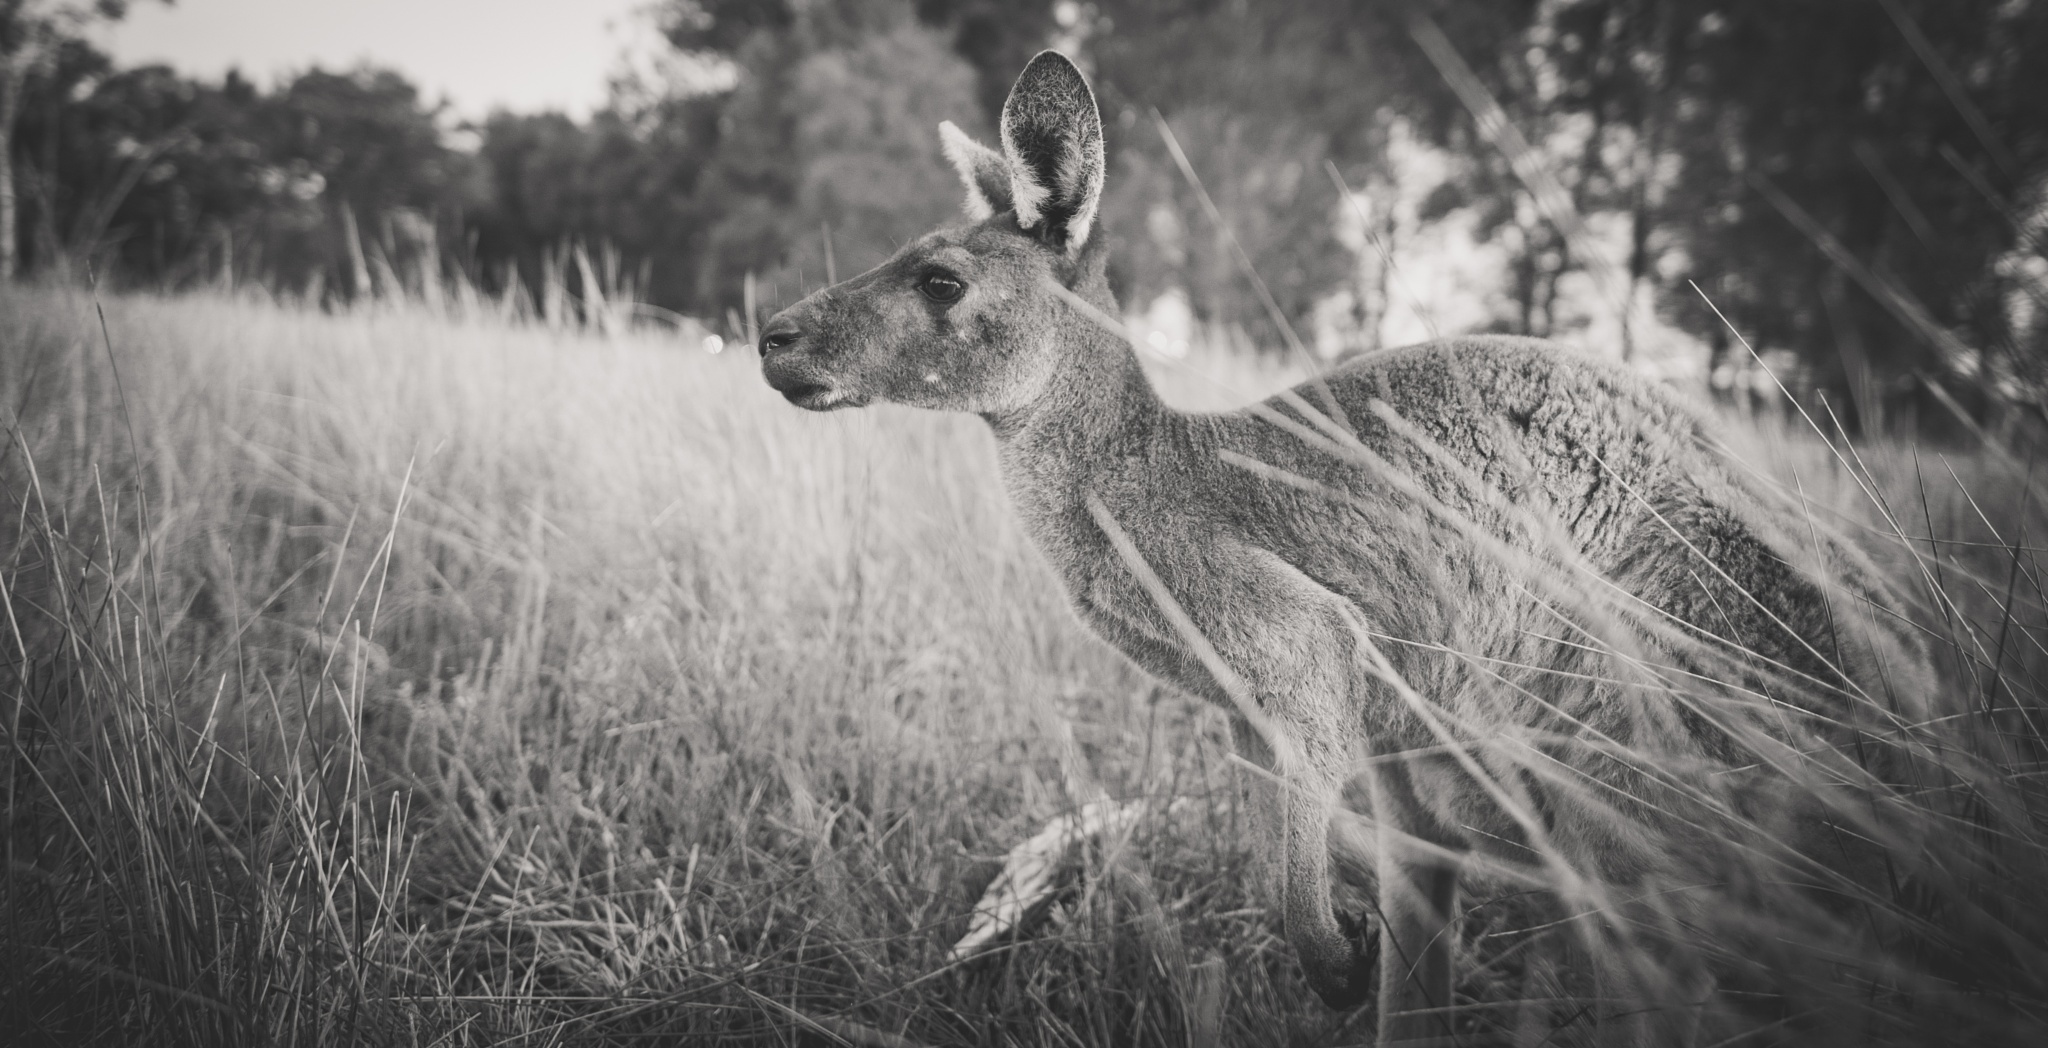 Kangaroo - WildLife by gaetangrond